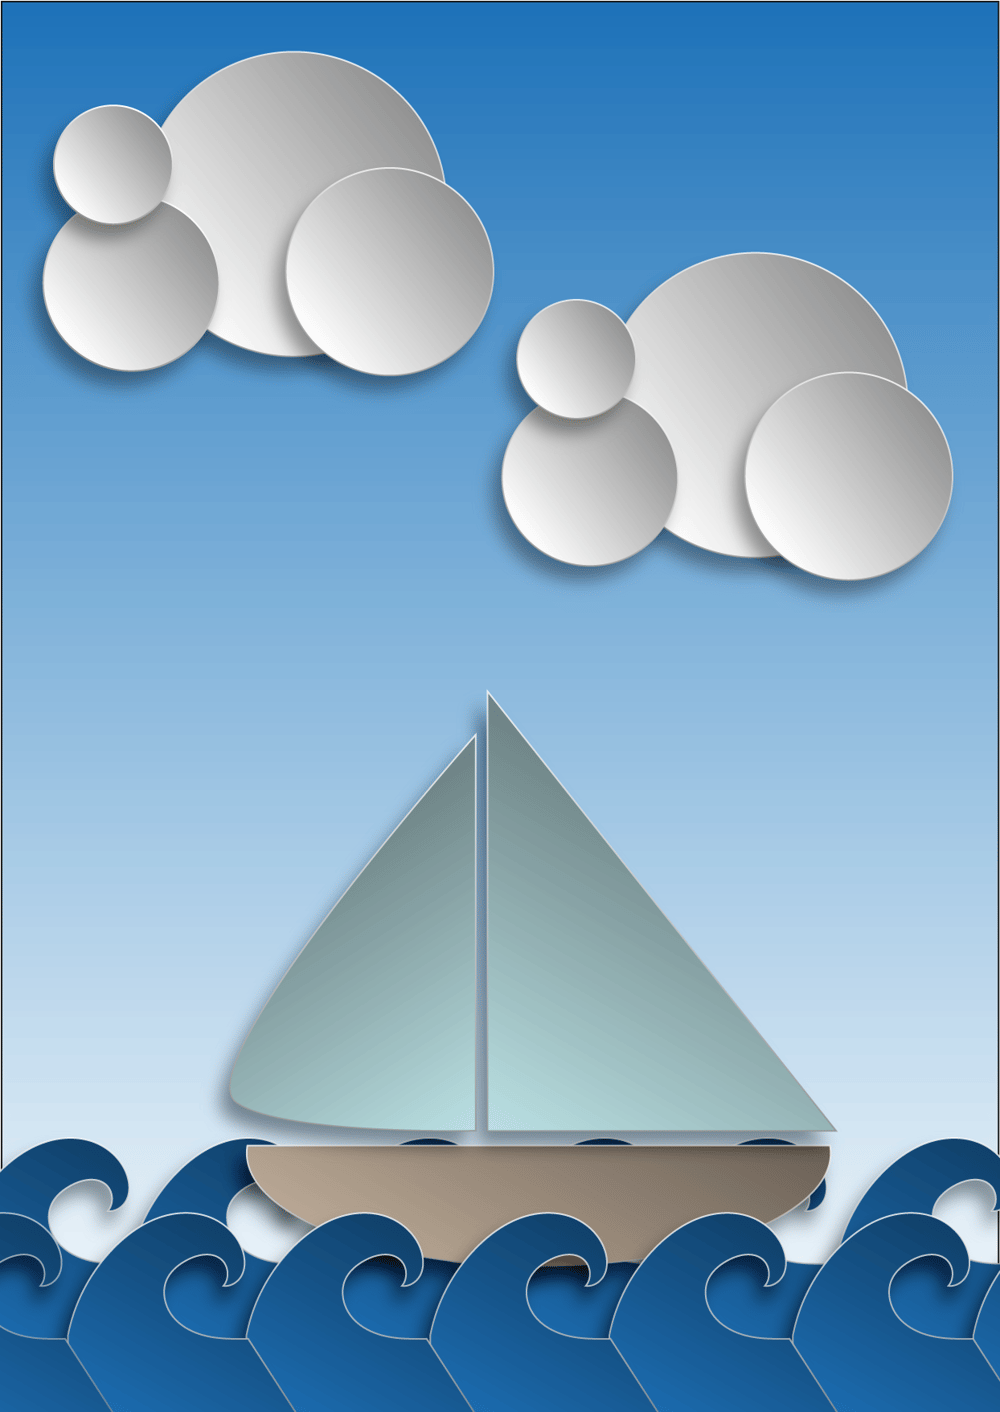 Sunny Sail - image 1 - student project